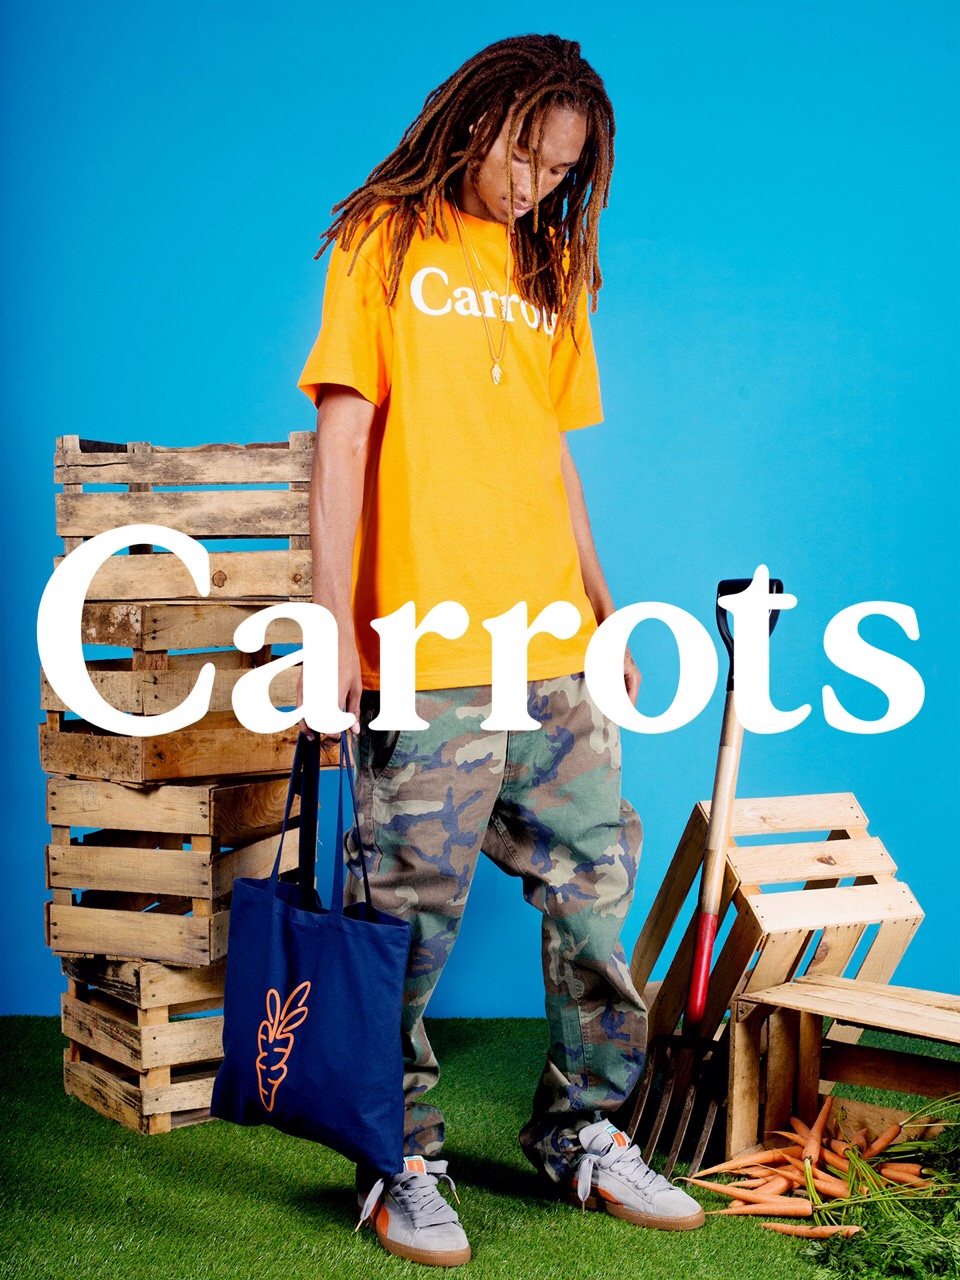 Carrots by Anwar Carrots — SS15 Lookbook. (click the image to view the lookbook,)